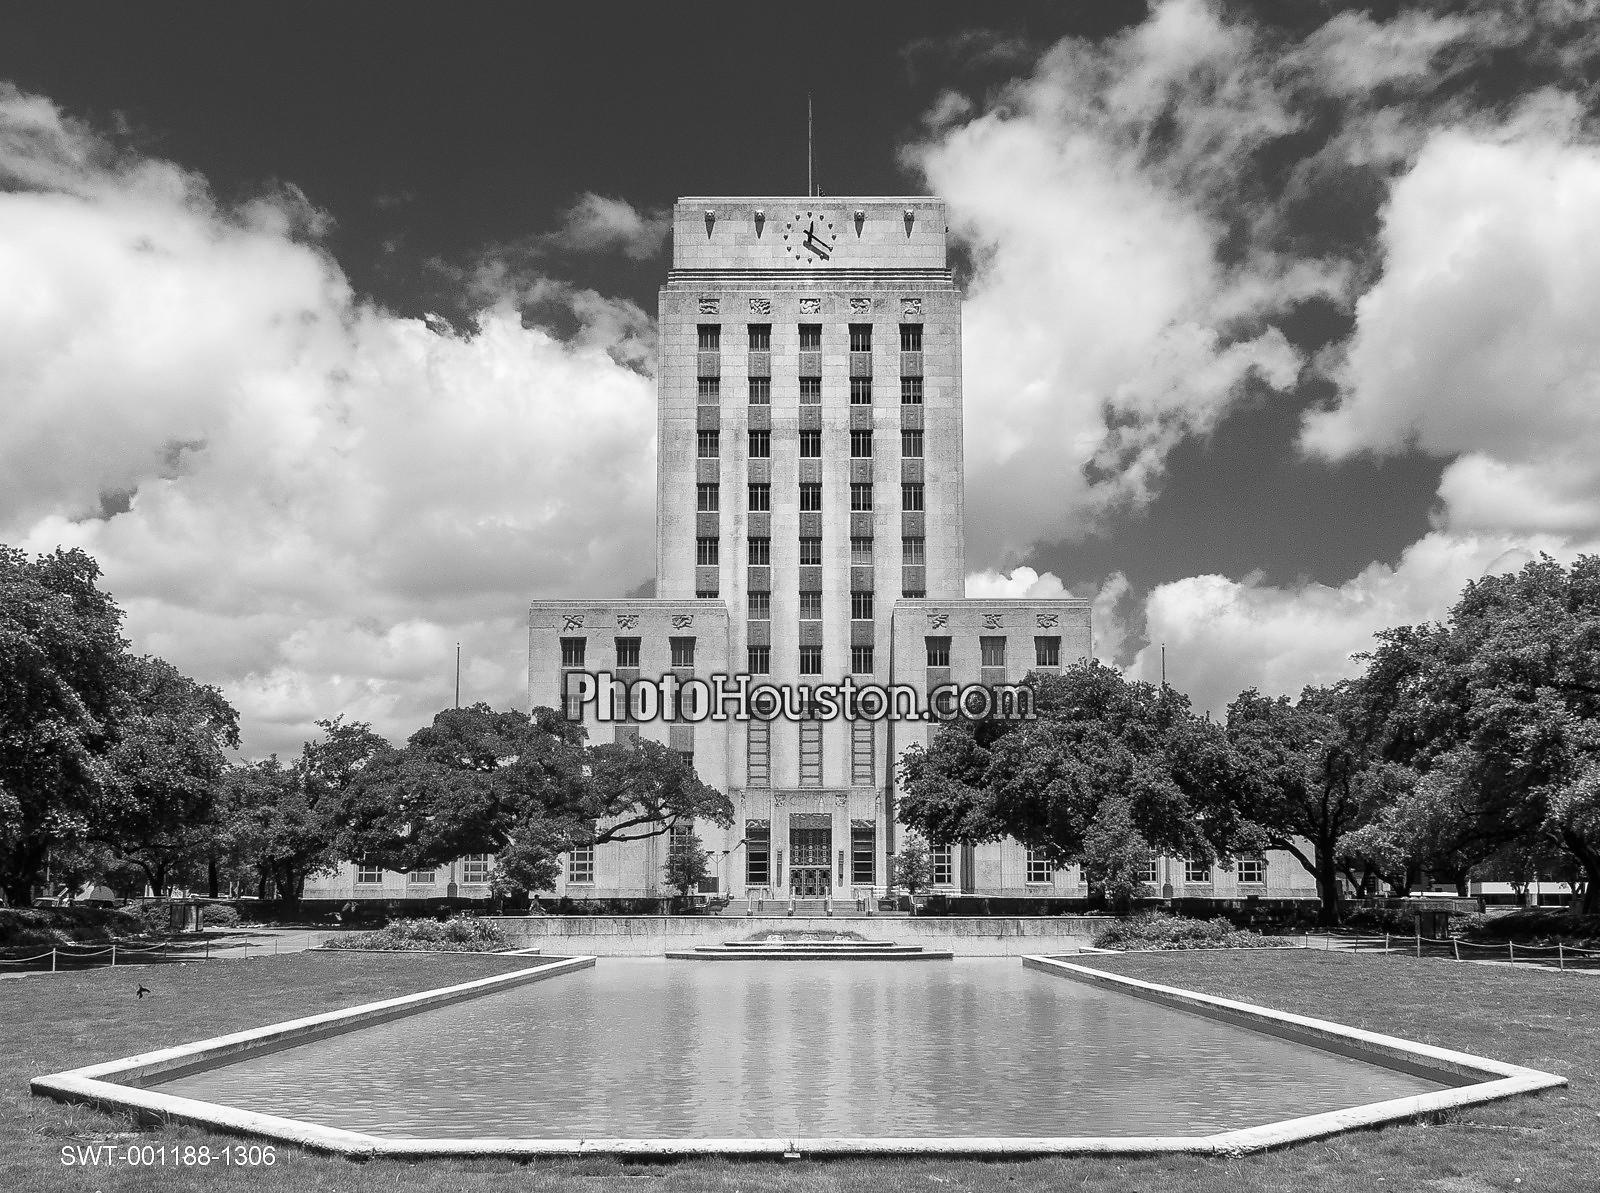 Houston City Hall and Hermann Square reflecting pool